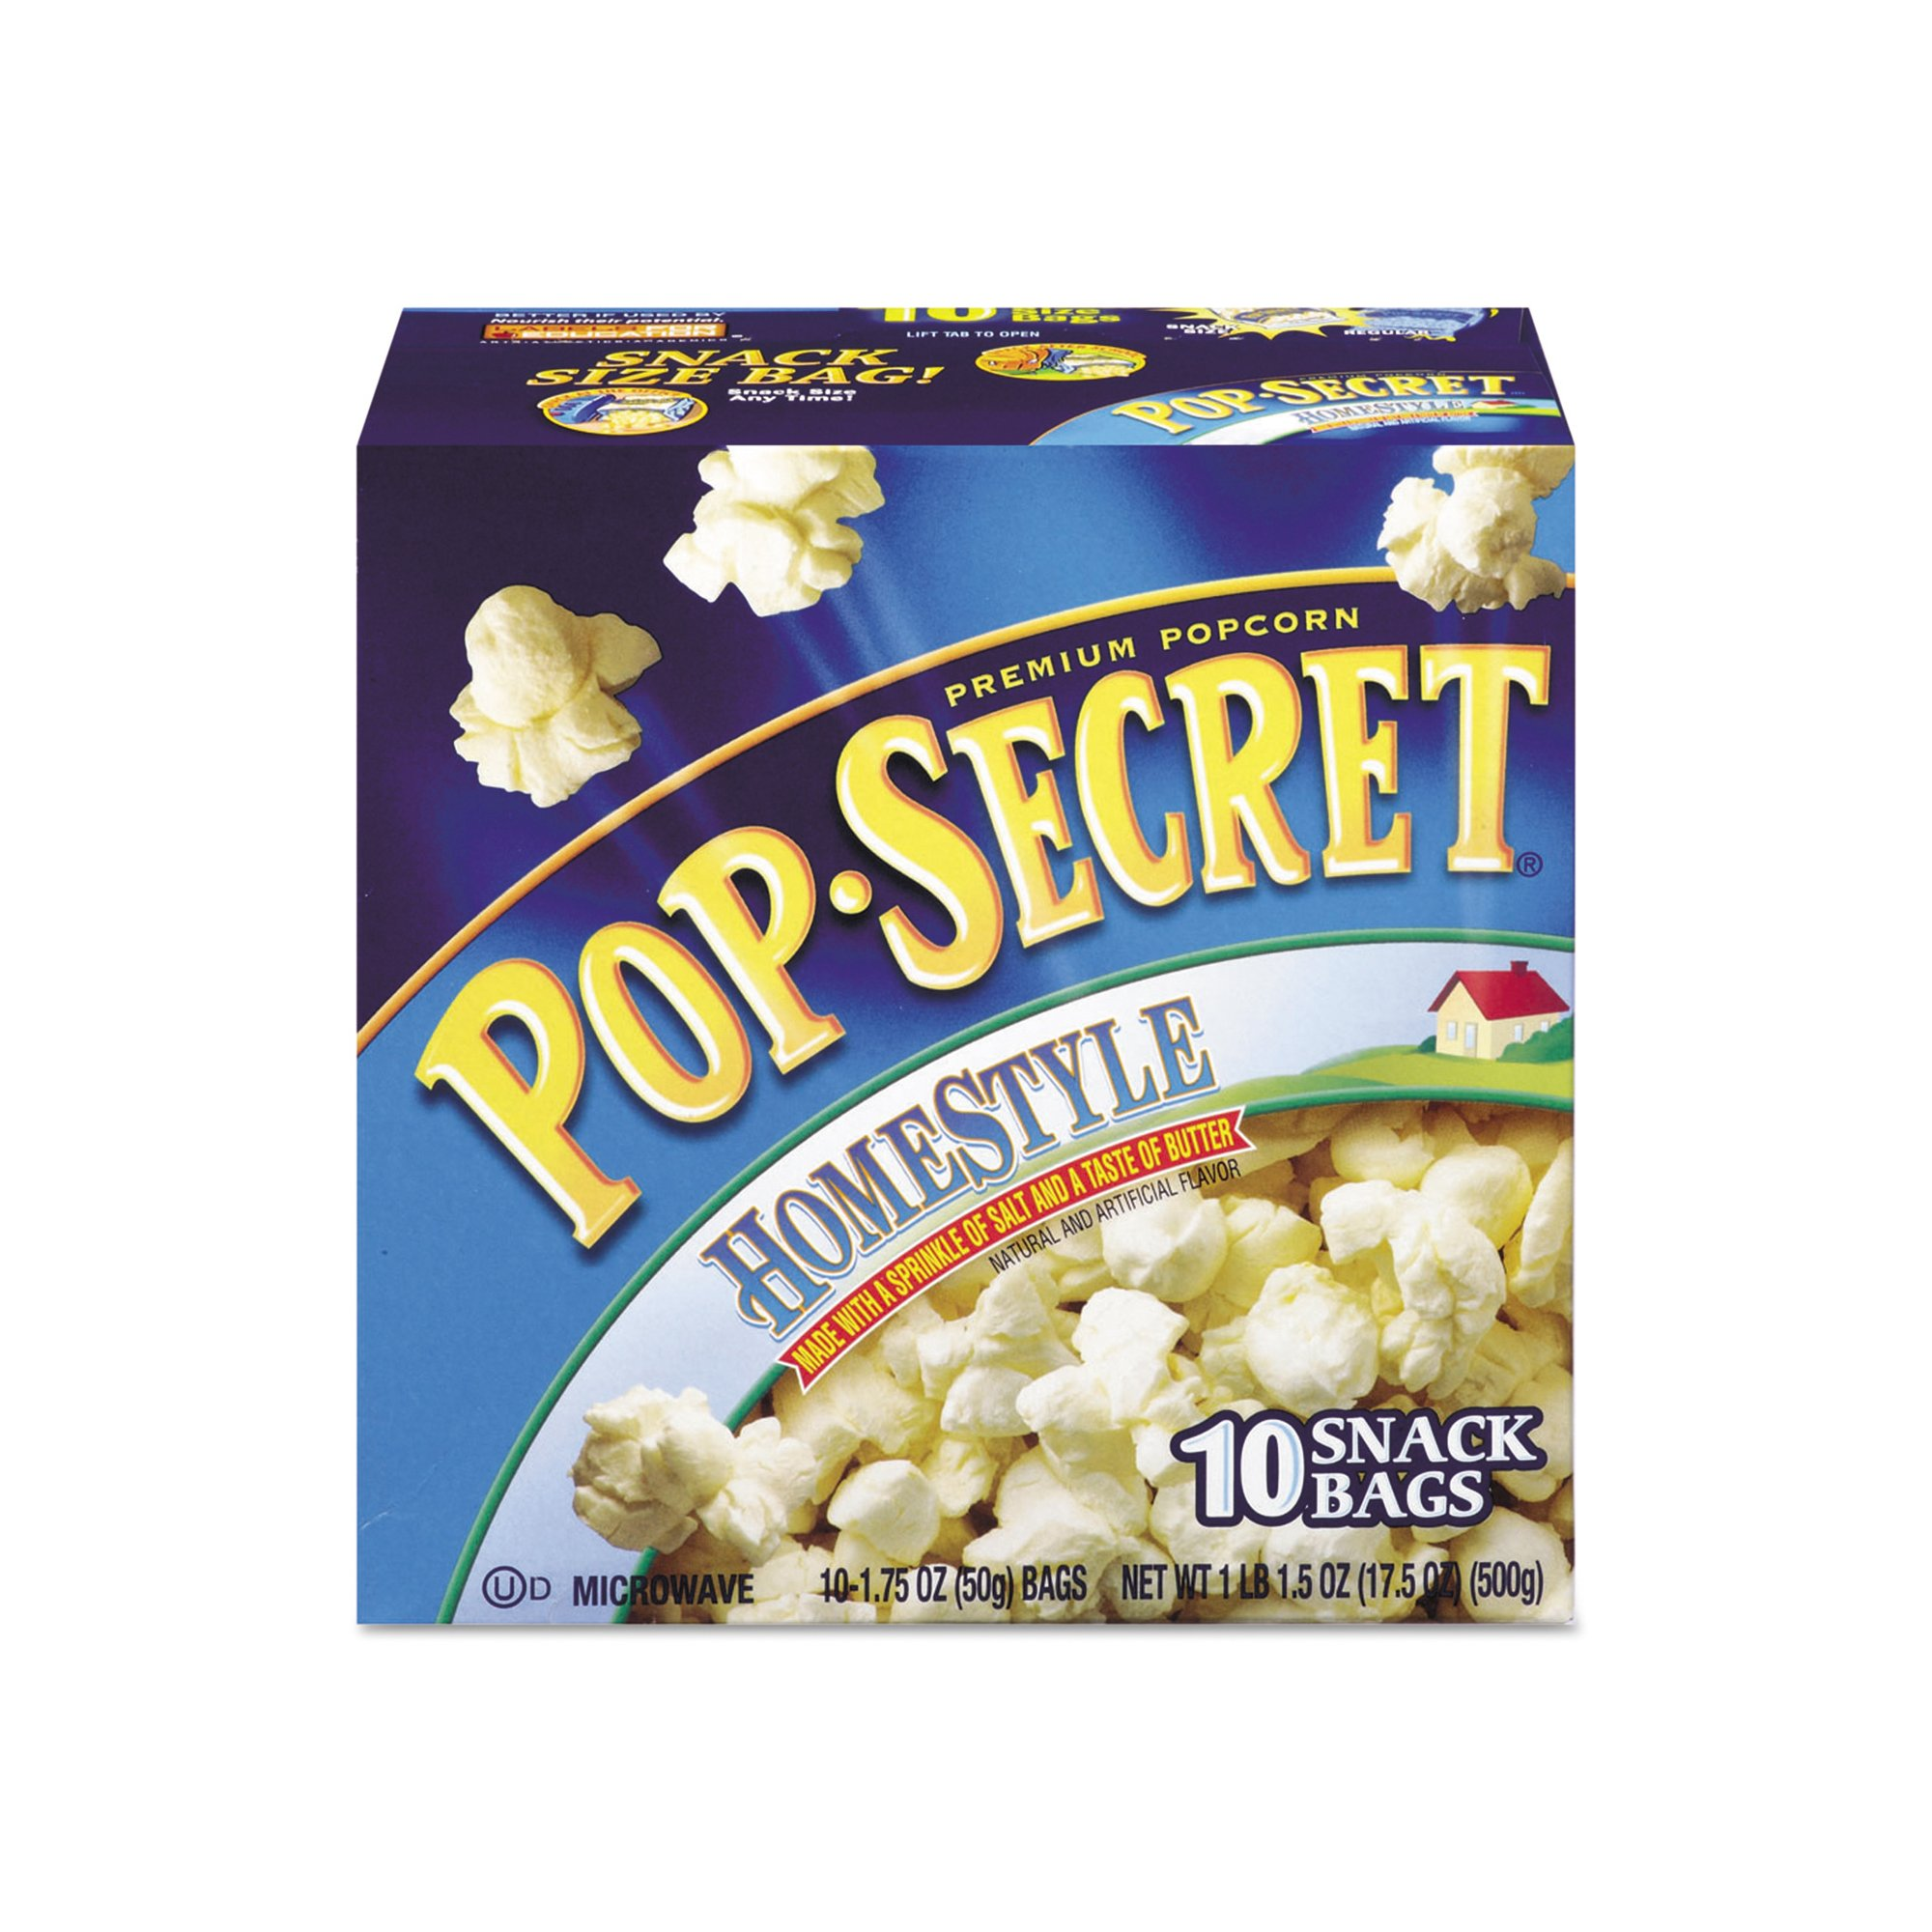 Pop Secret Microwave Popcorn, Homestyle (1.2 oz bags, 10 pk.) - Pack of 2